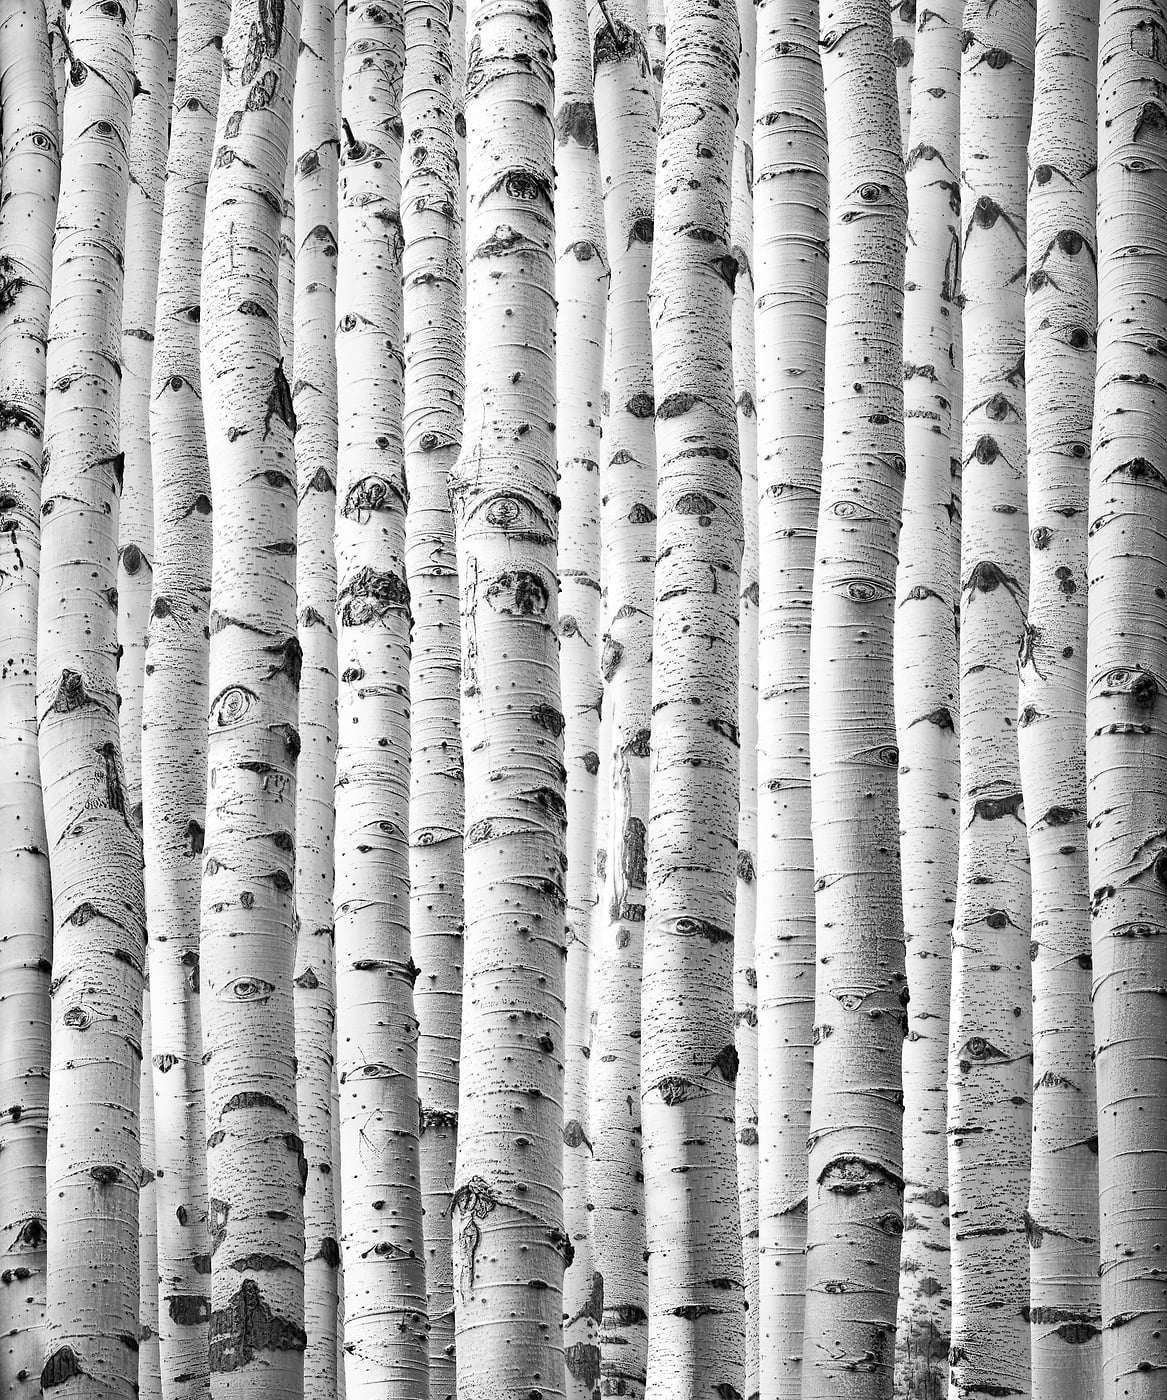 270 megapixels! A very high resolution, large-format VAST photo print of aspen trees; black and white abstract nature photograph created by Nick Pedersen